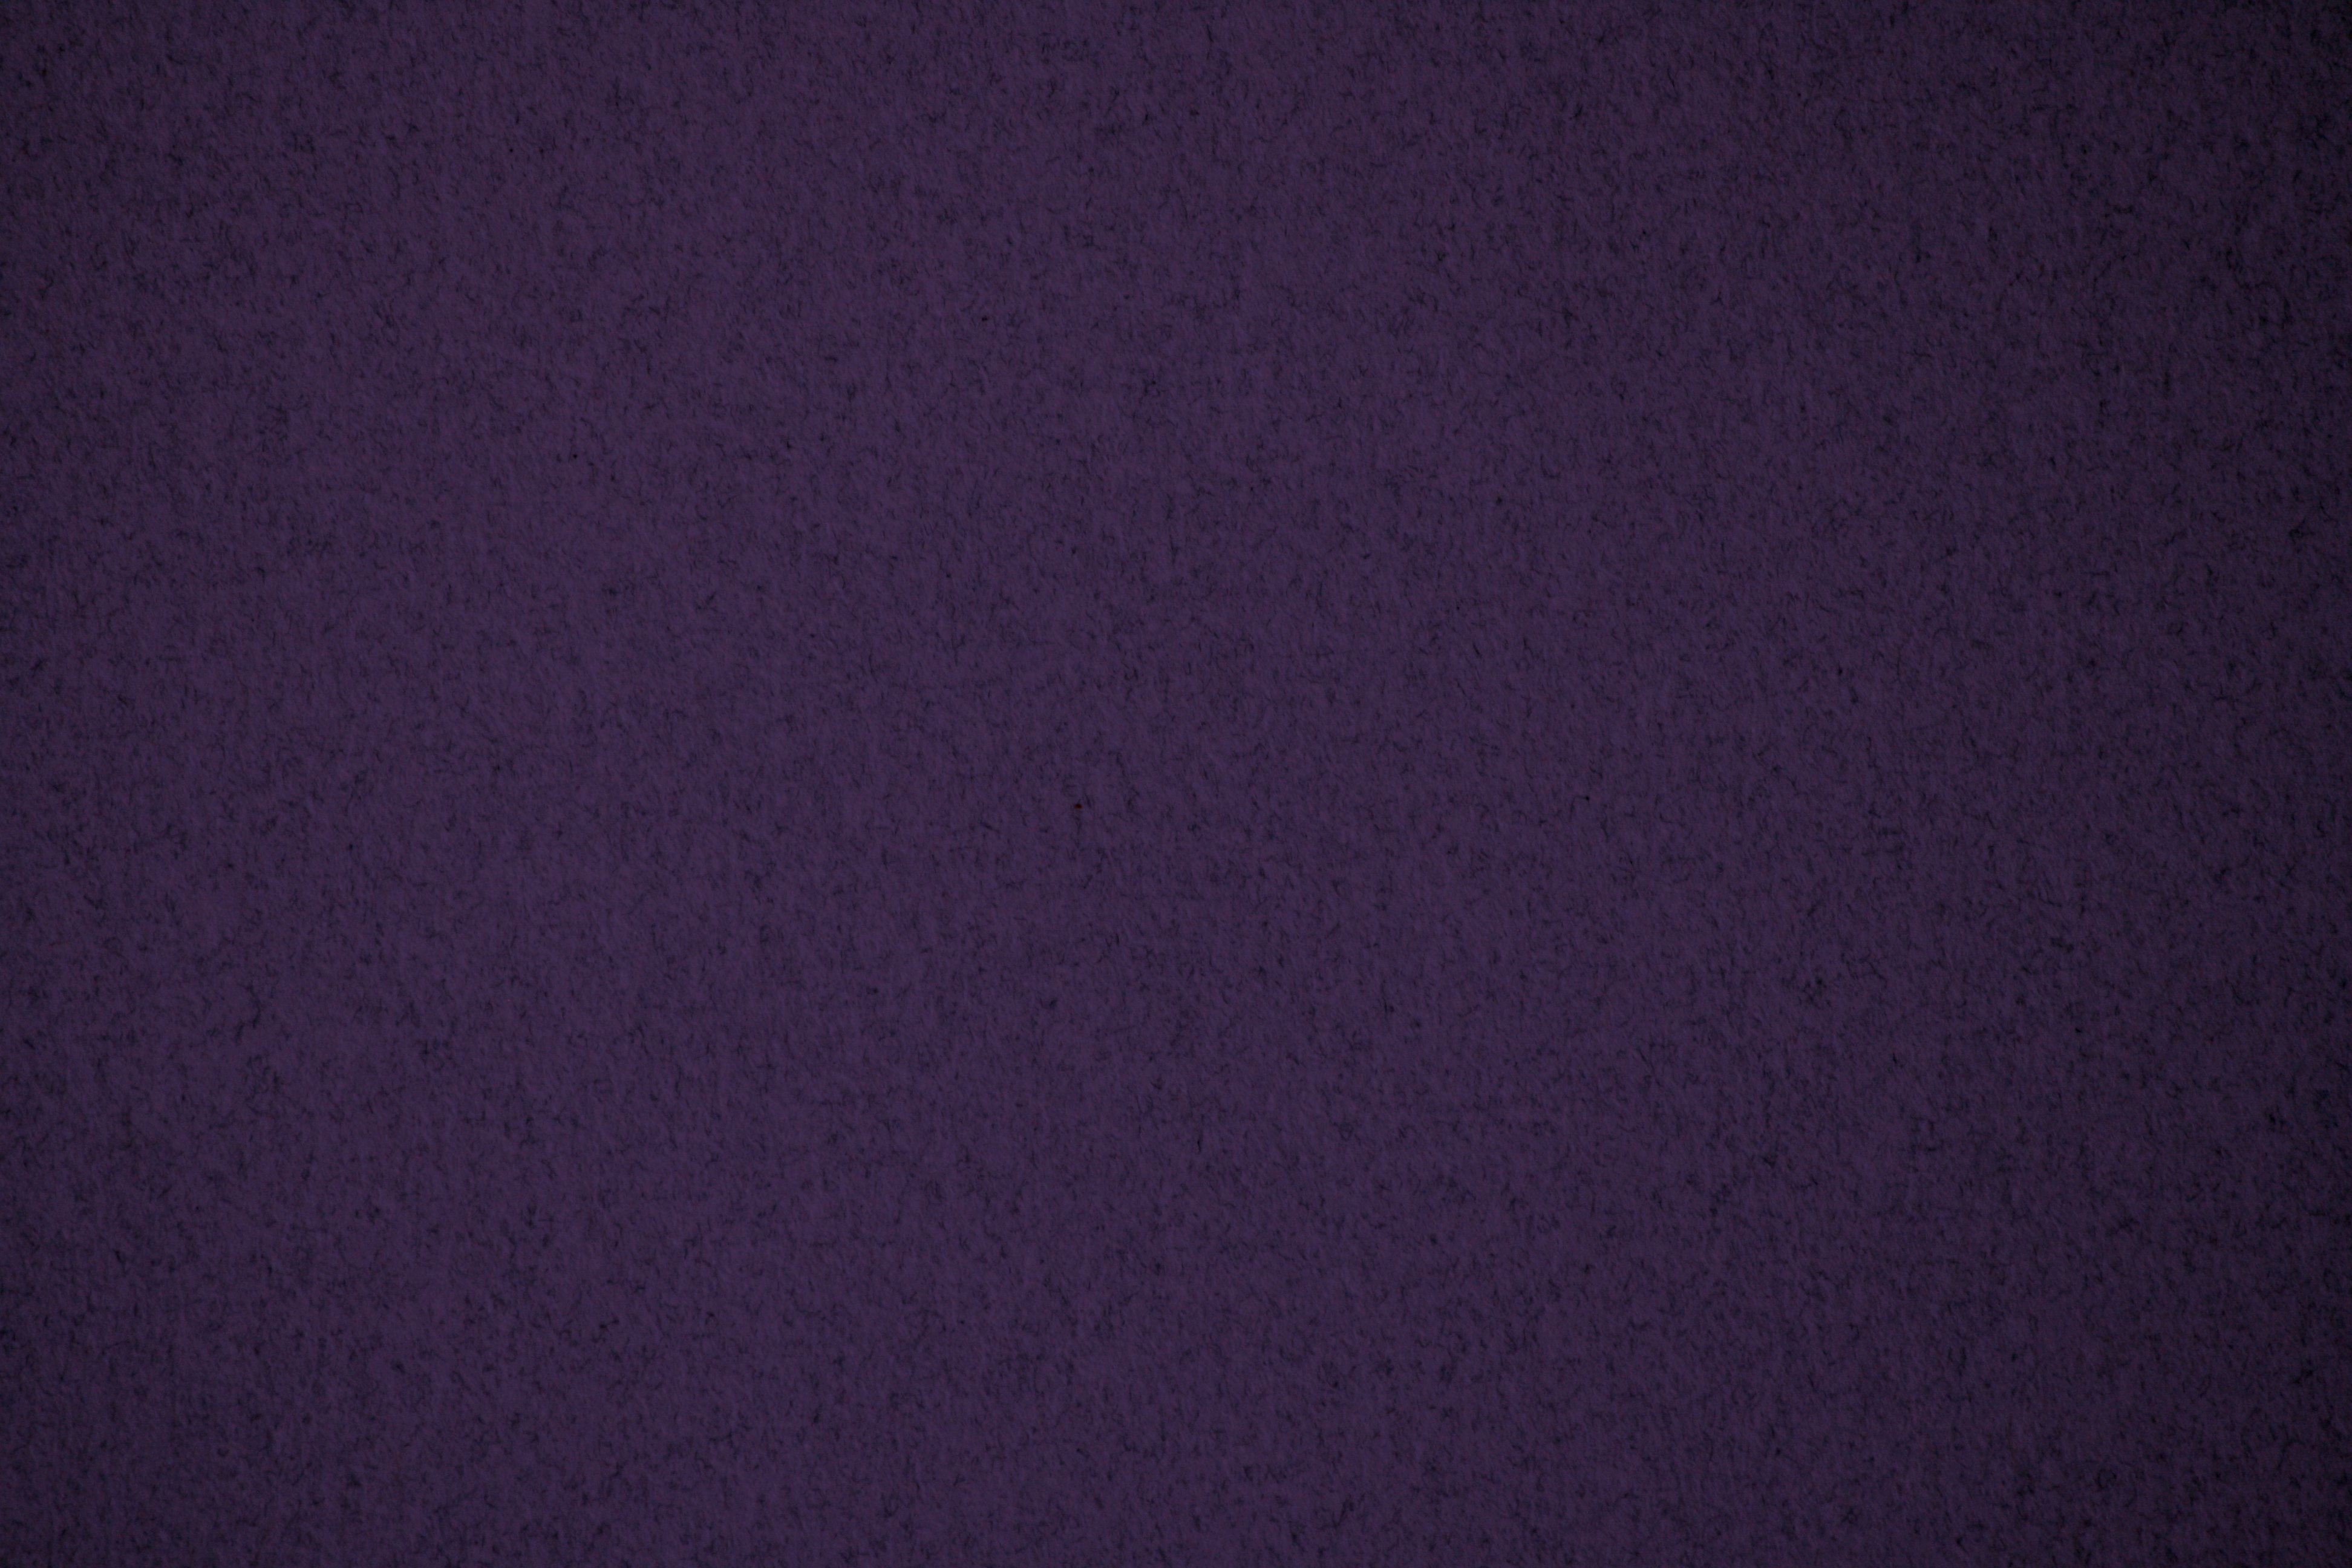 Dark Purple Backgrounds Images & Pictures  Becuo